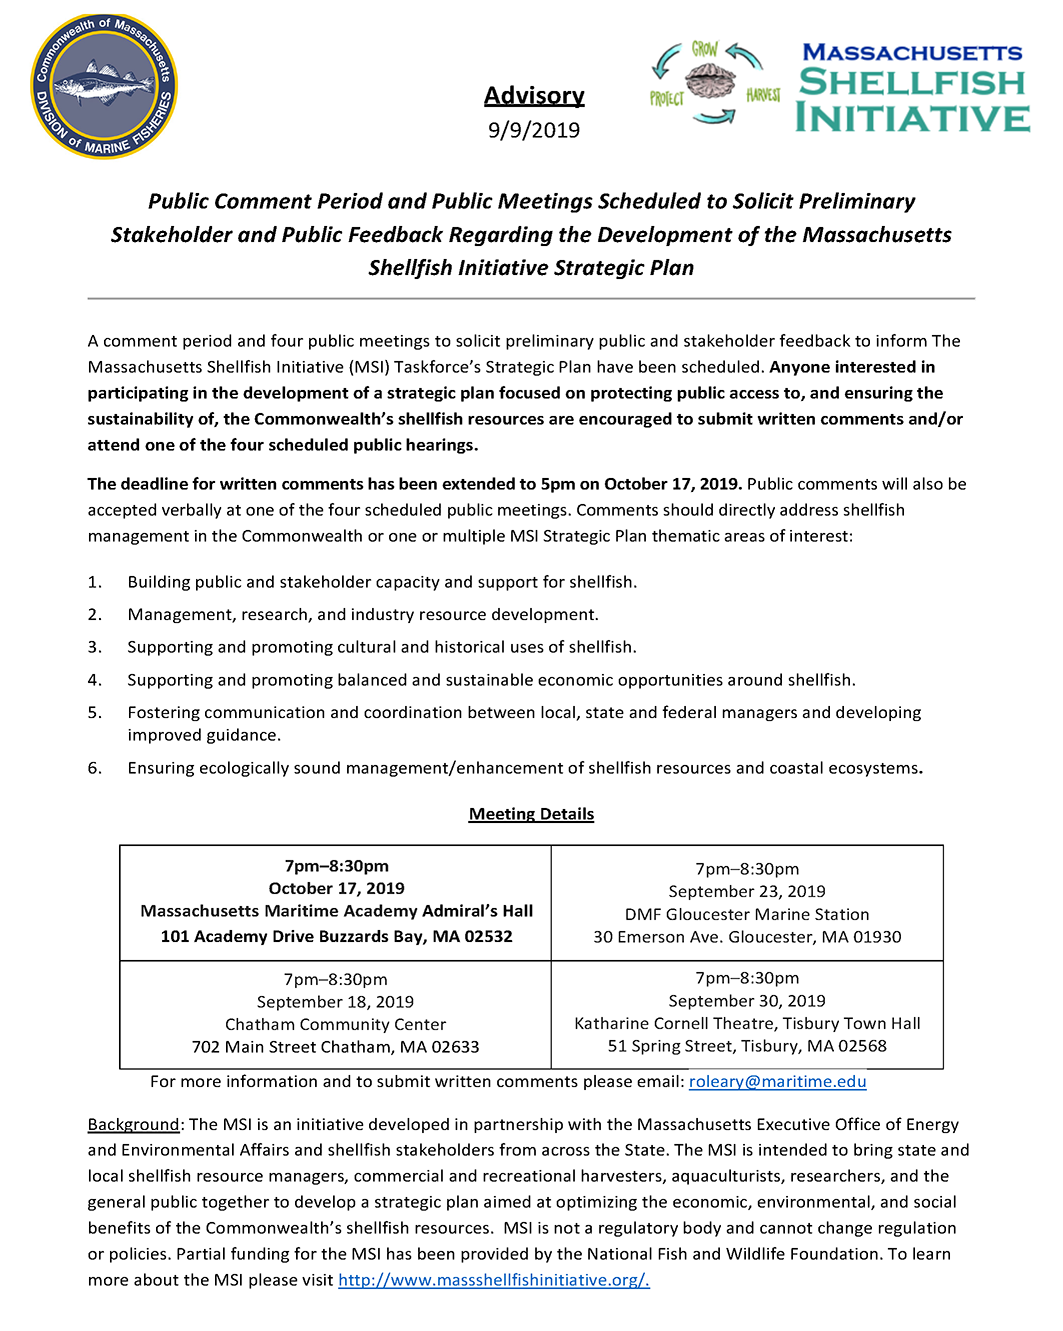 Massachusetts Shellfish Initiative Meeting Advisory 9/9/19